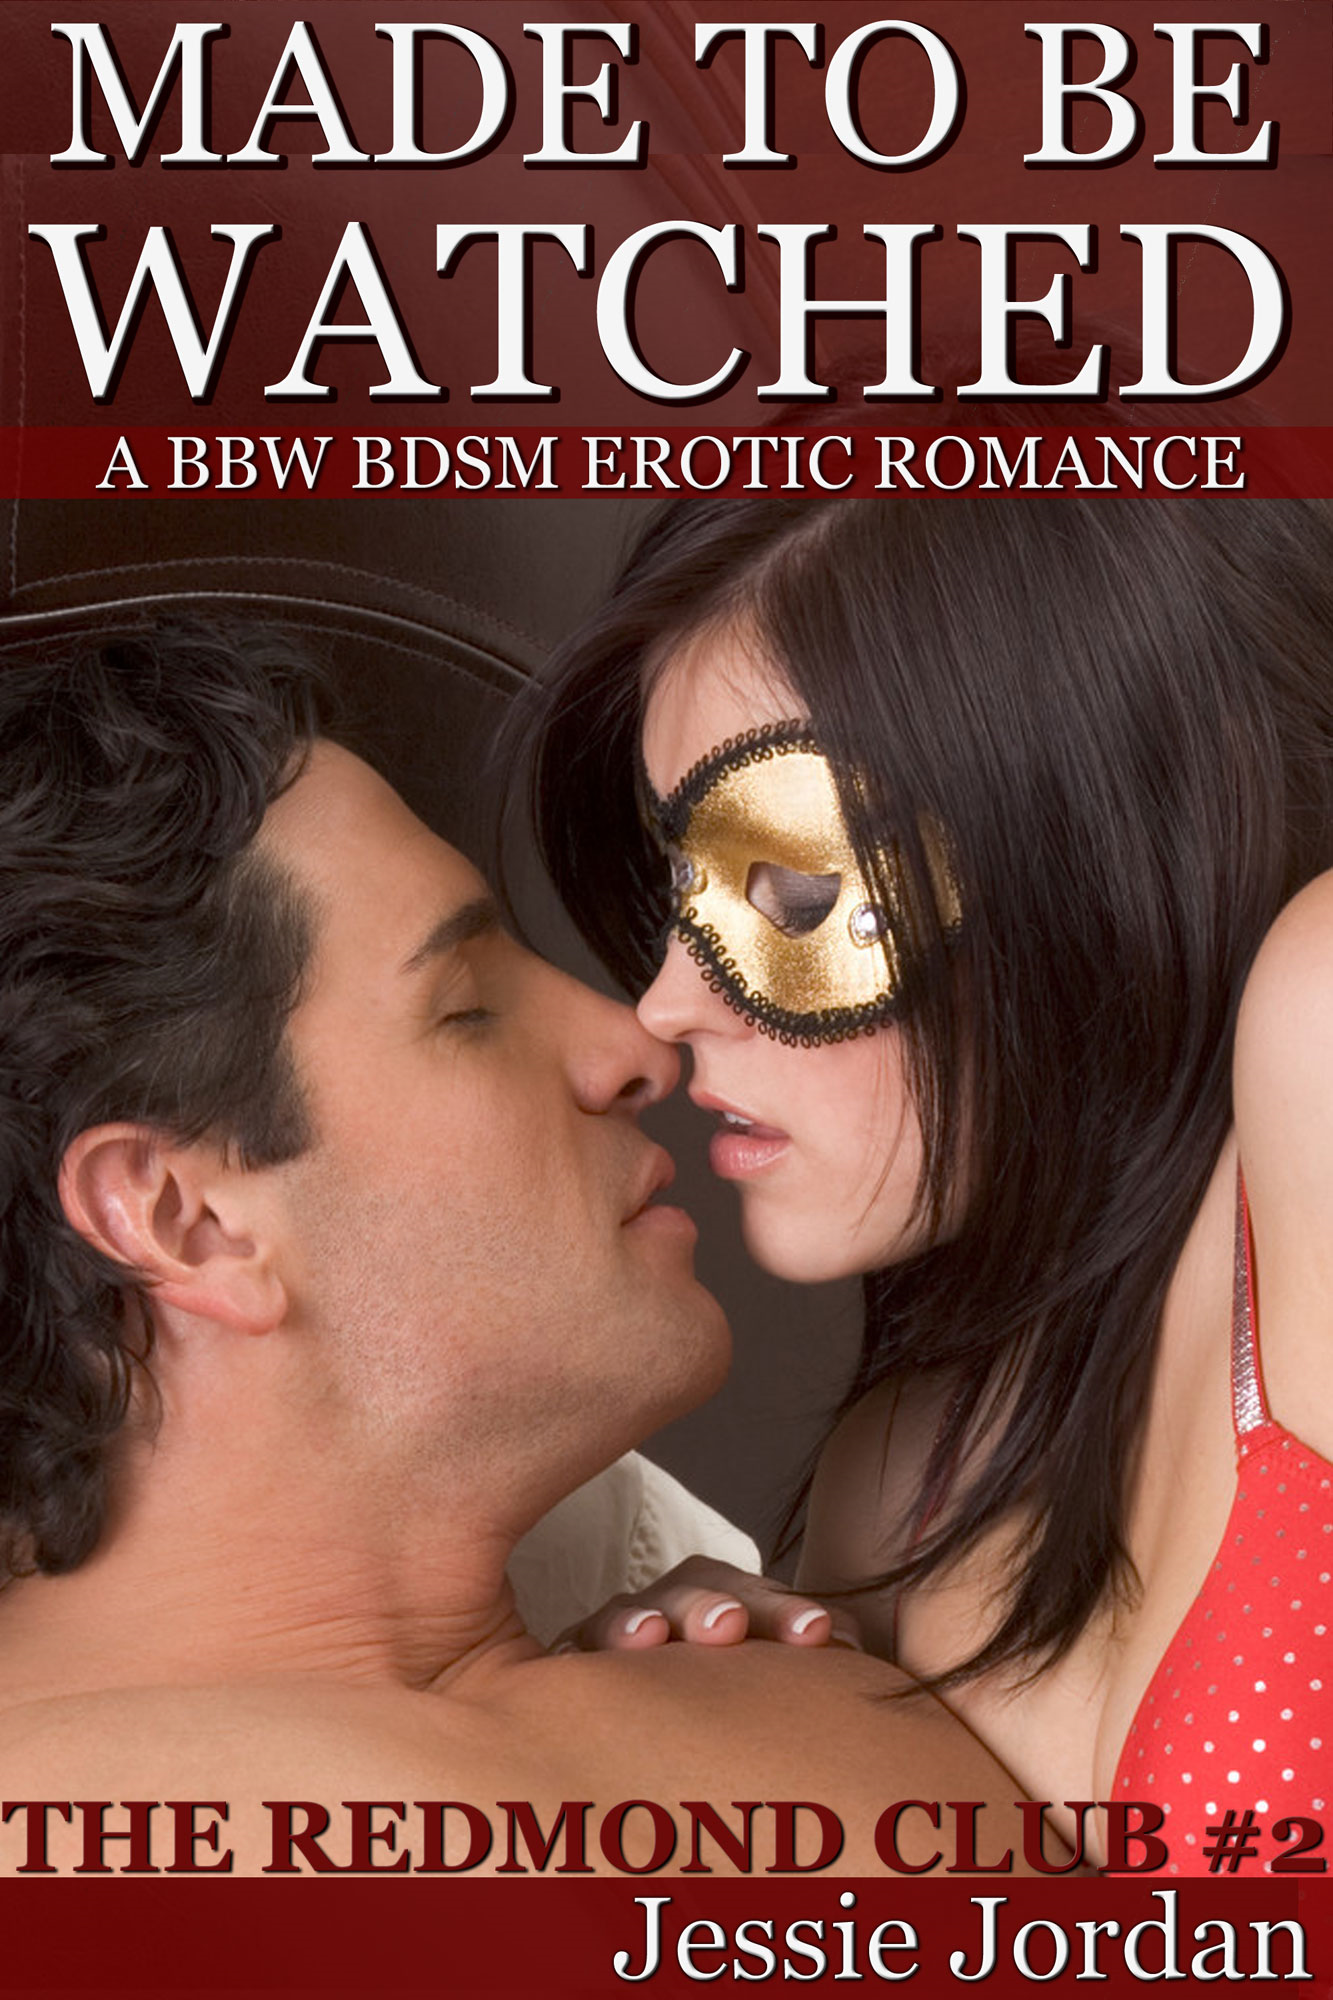 Made to be Watched a BBW BDSM Erotic Romance